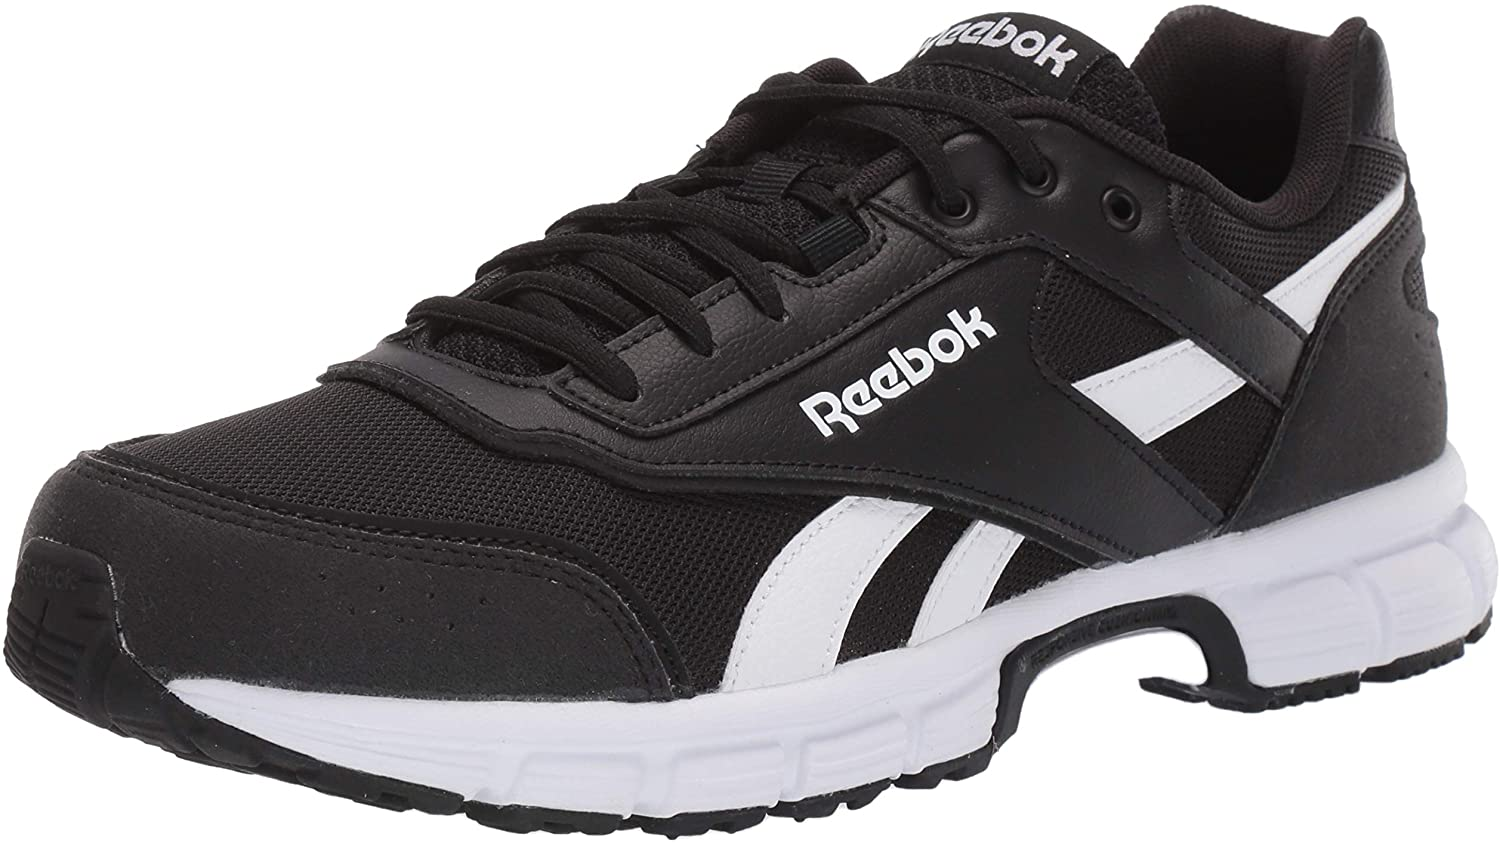 Reebok Unisex-Adult Shipping included Royal Run Sneaker Finish Ranking TOP3